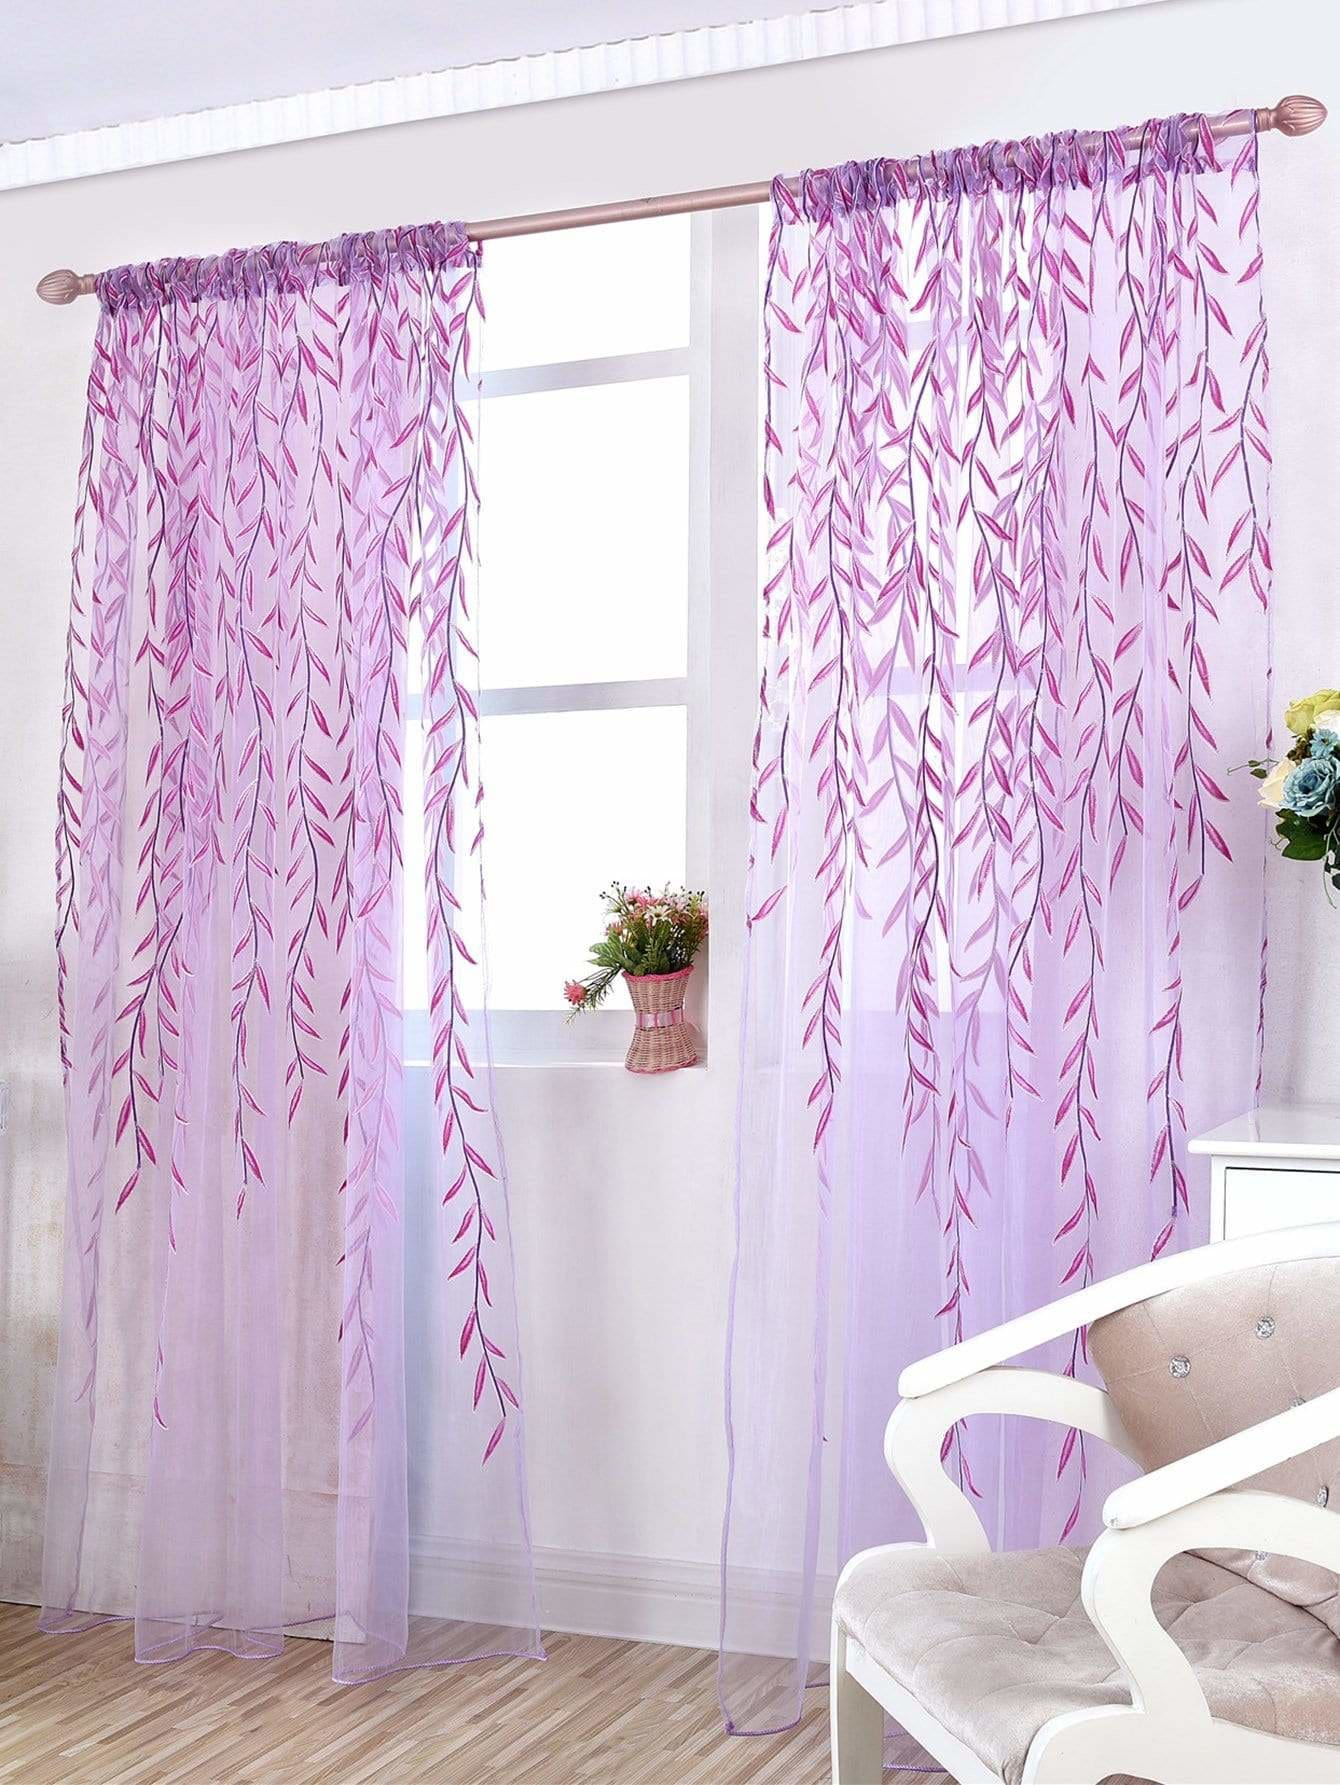 Willow Leaves Sheer Mesh Curtain 1pc - Curtains